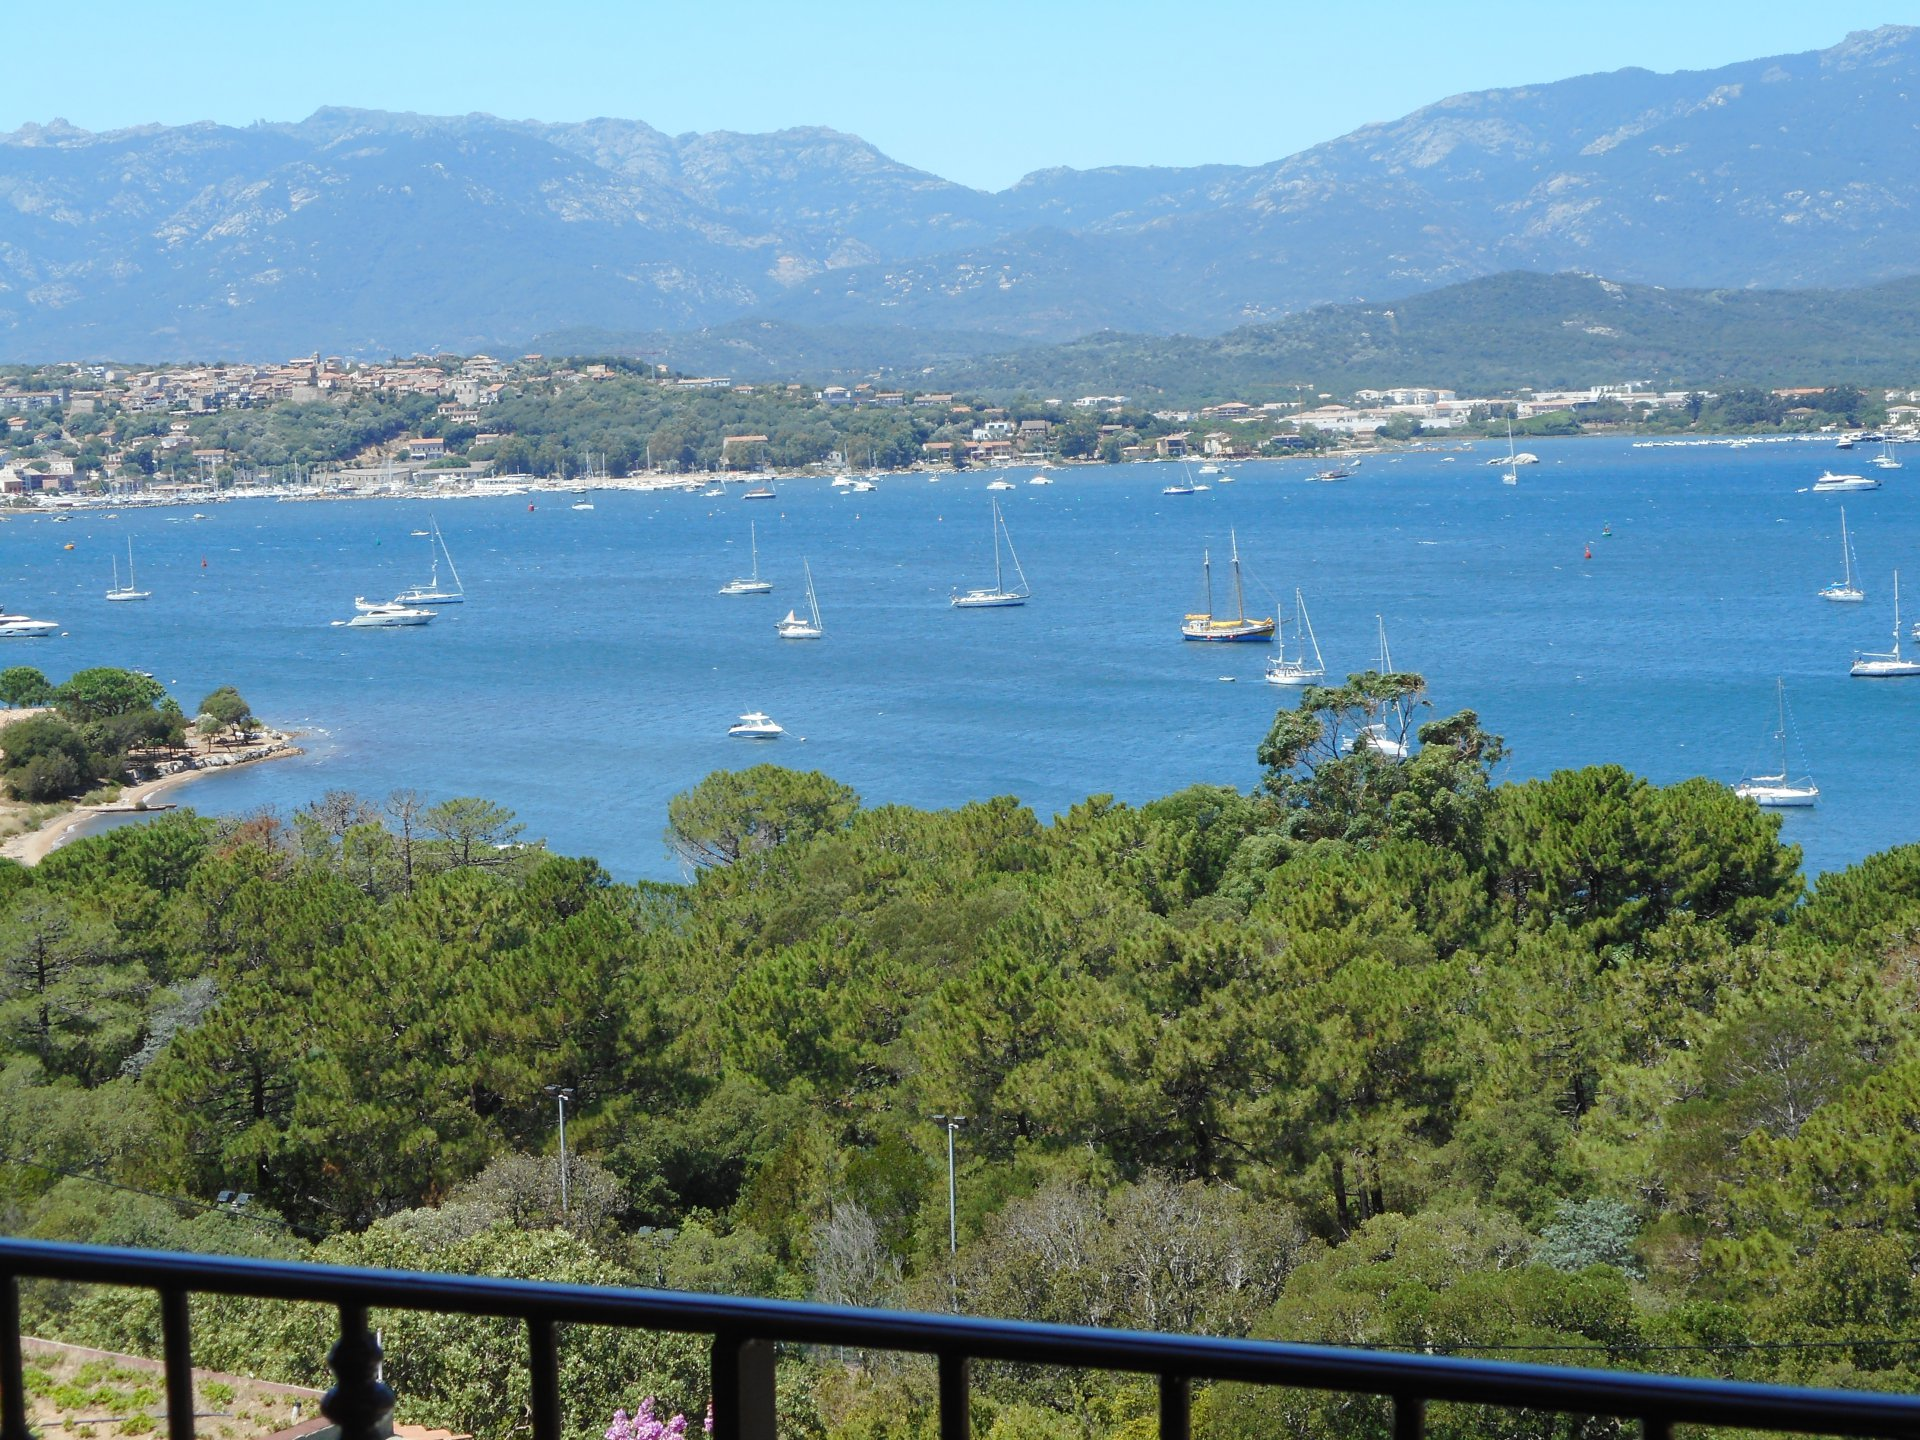 Sale of 2200m2 of land in Porto Vecchio